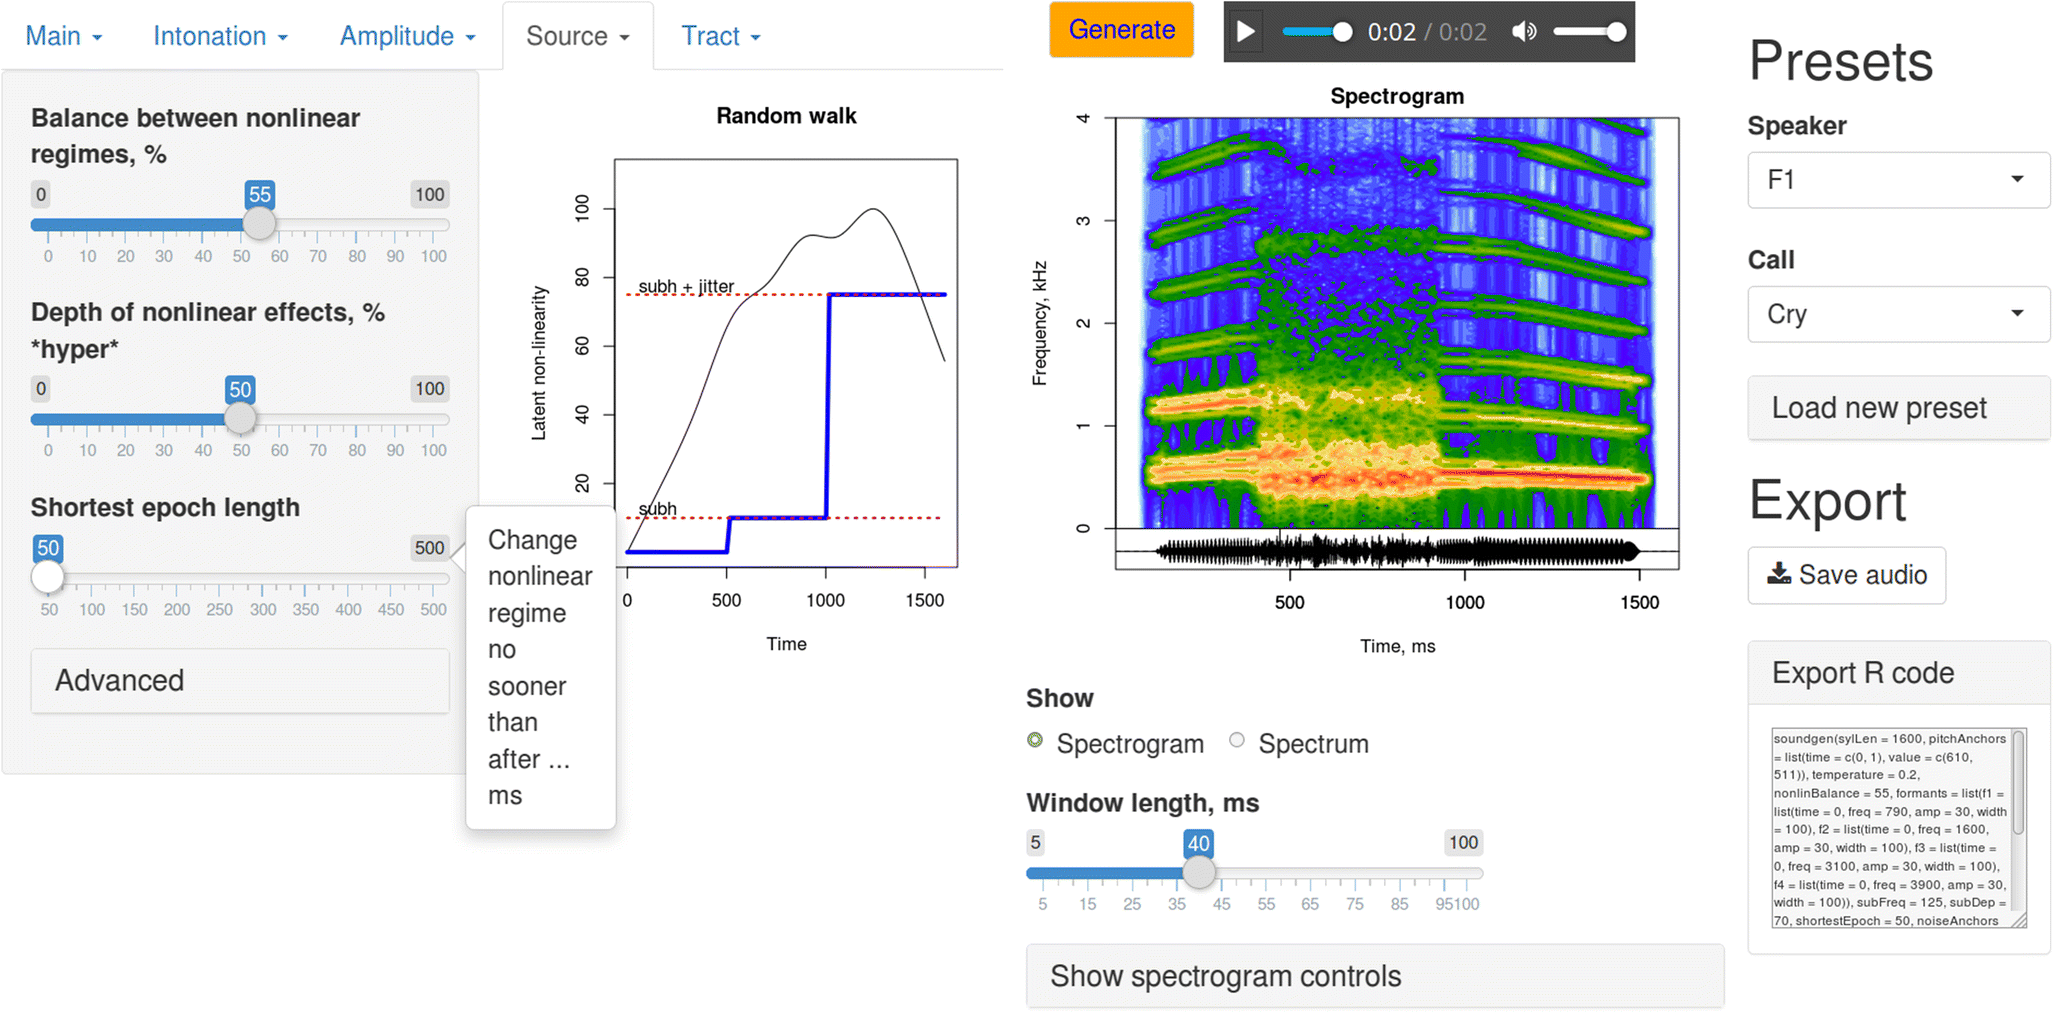 Soundgen: An open-source tool for synthesizing nonverbal